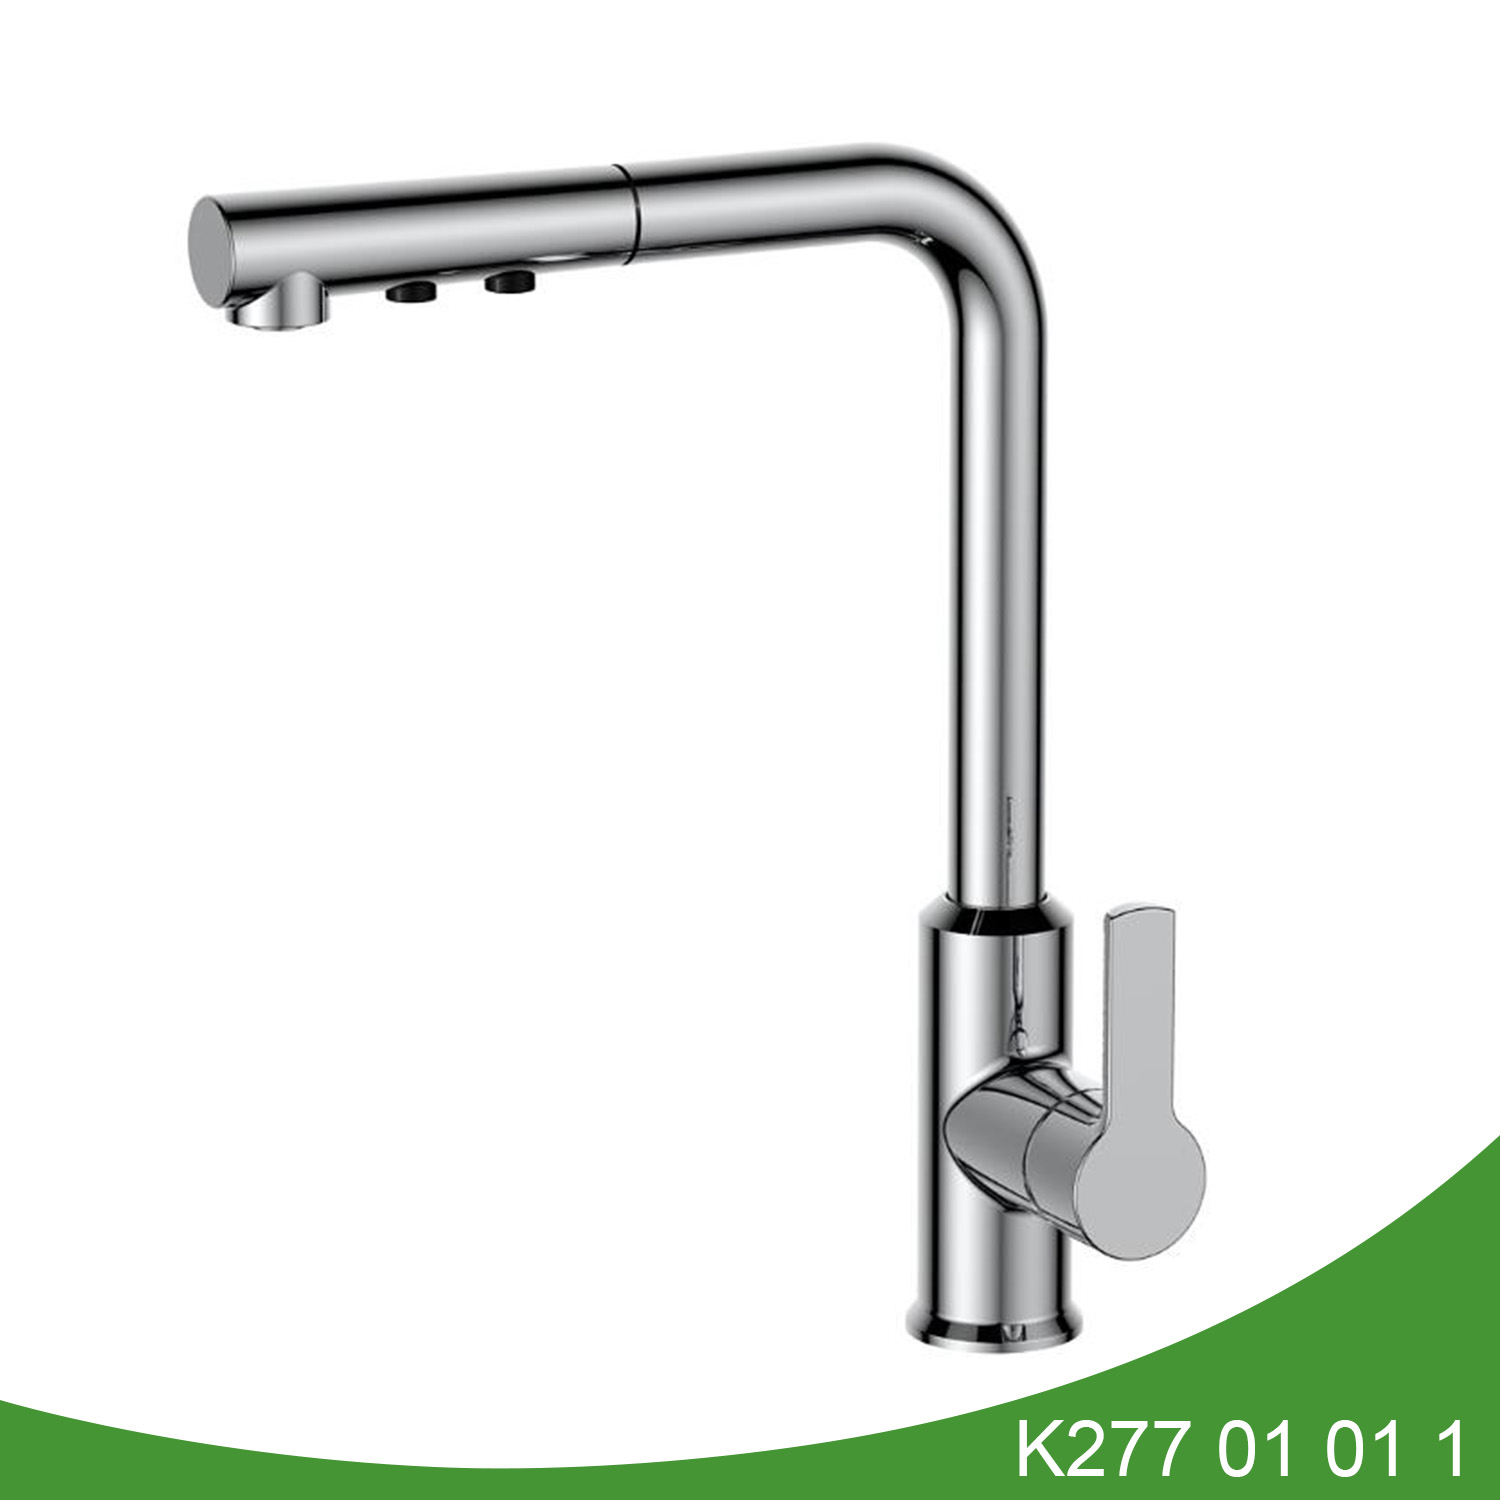 Pull out kitchen tap K277 01 01 1